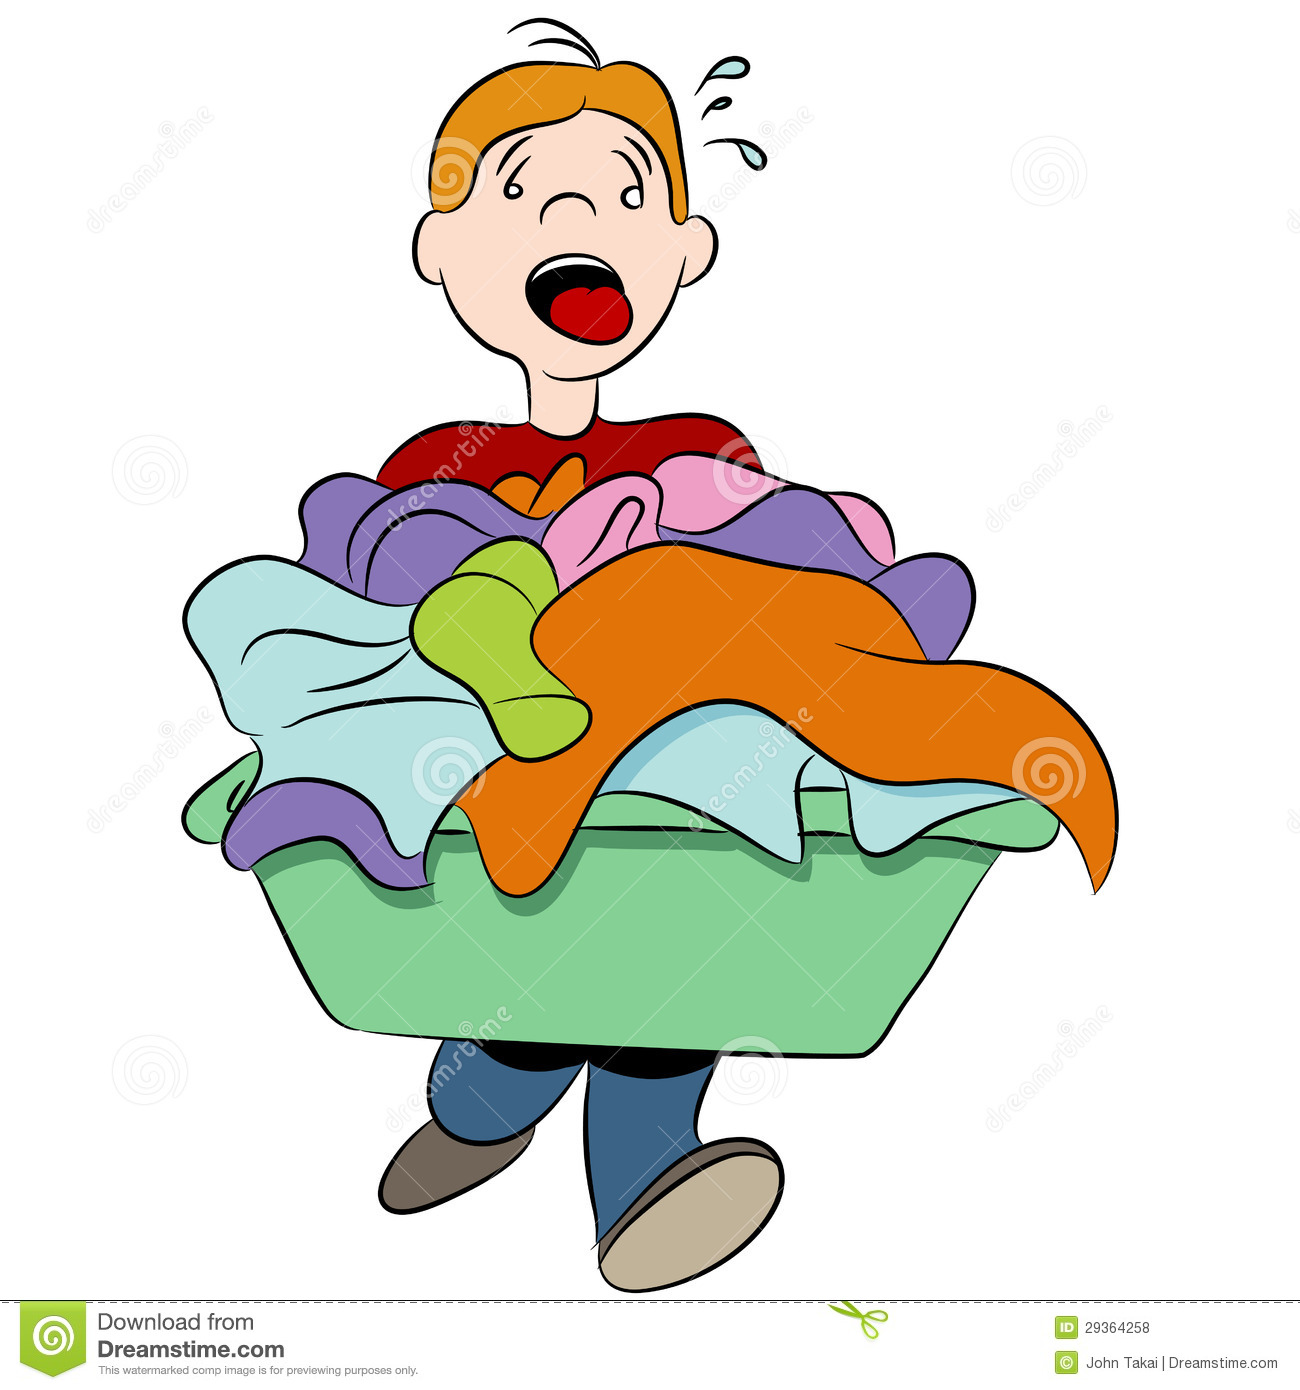 Download Free png Boy putting on clothes clipart collection.